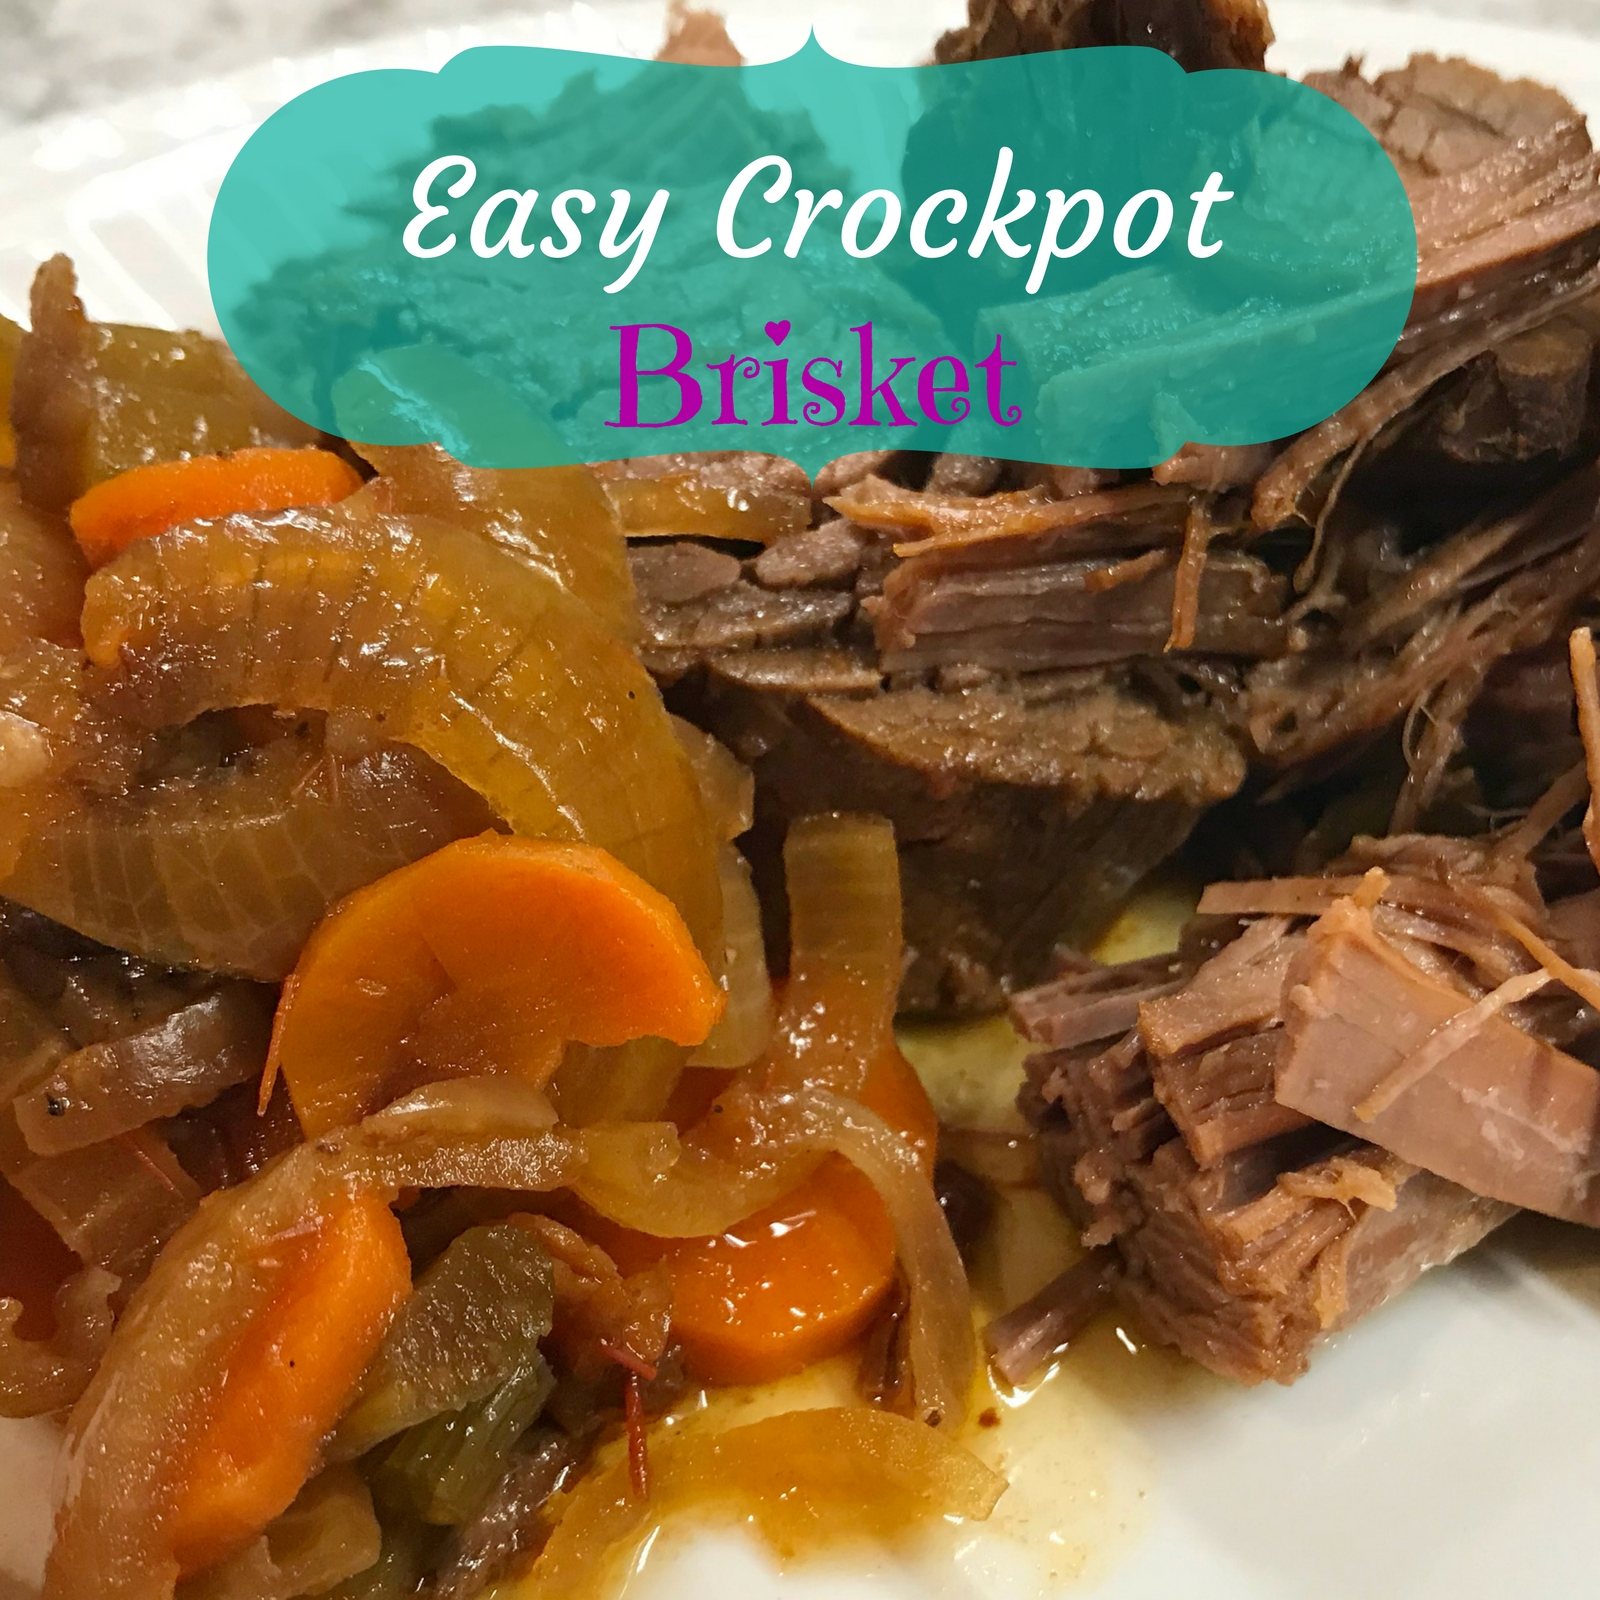 Easy Crockpot Brisket